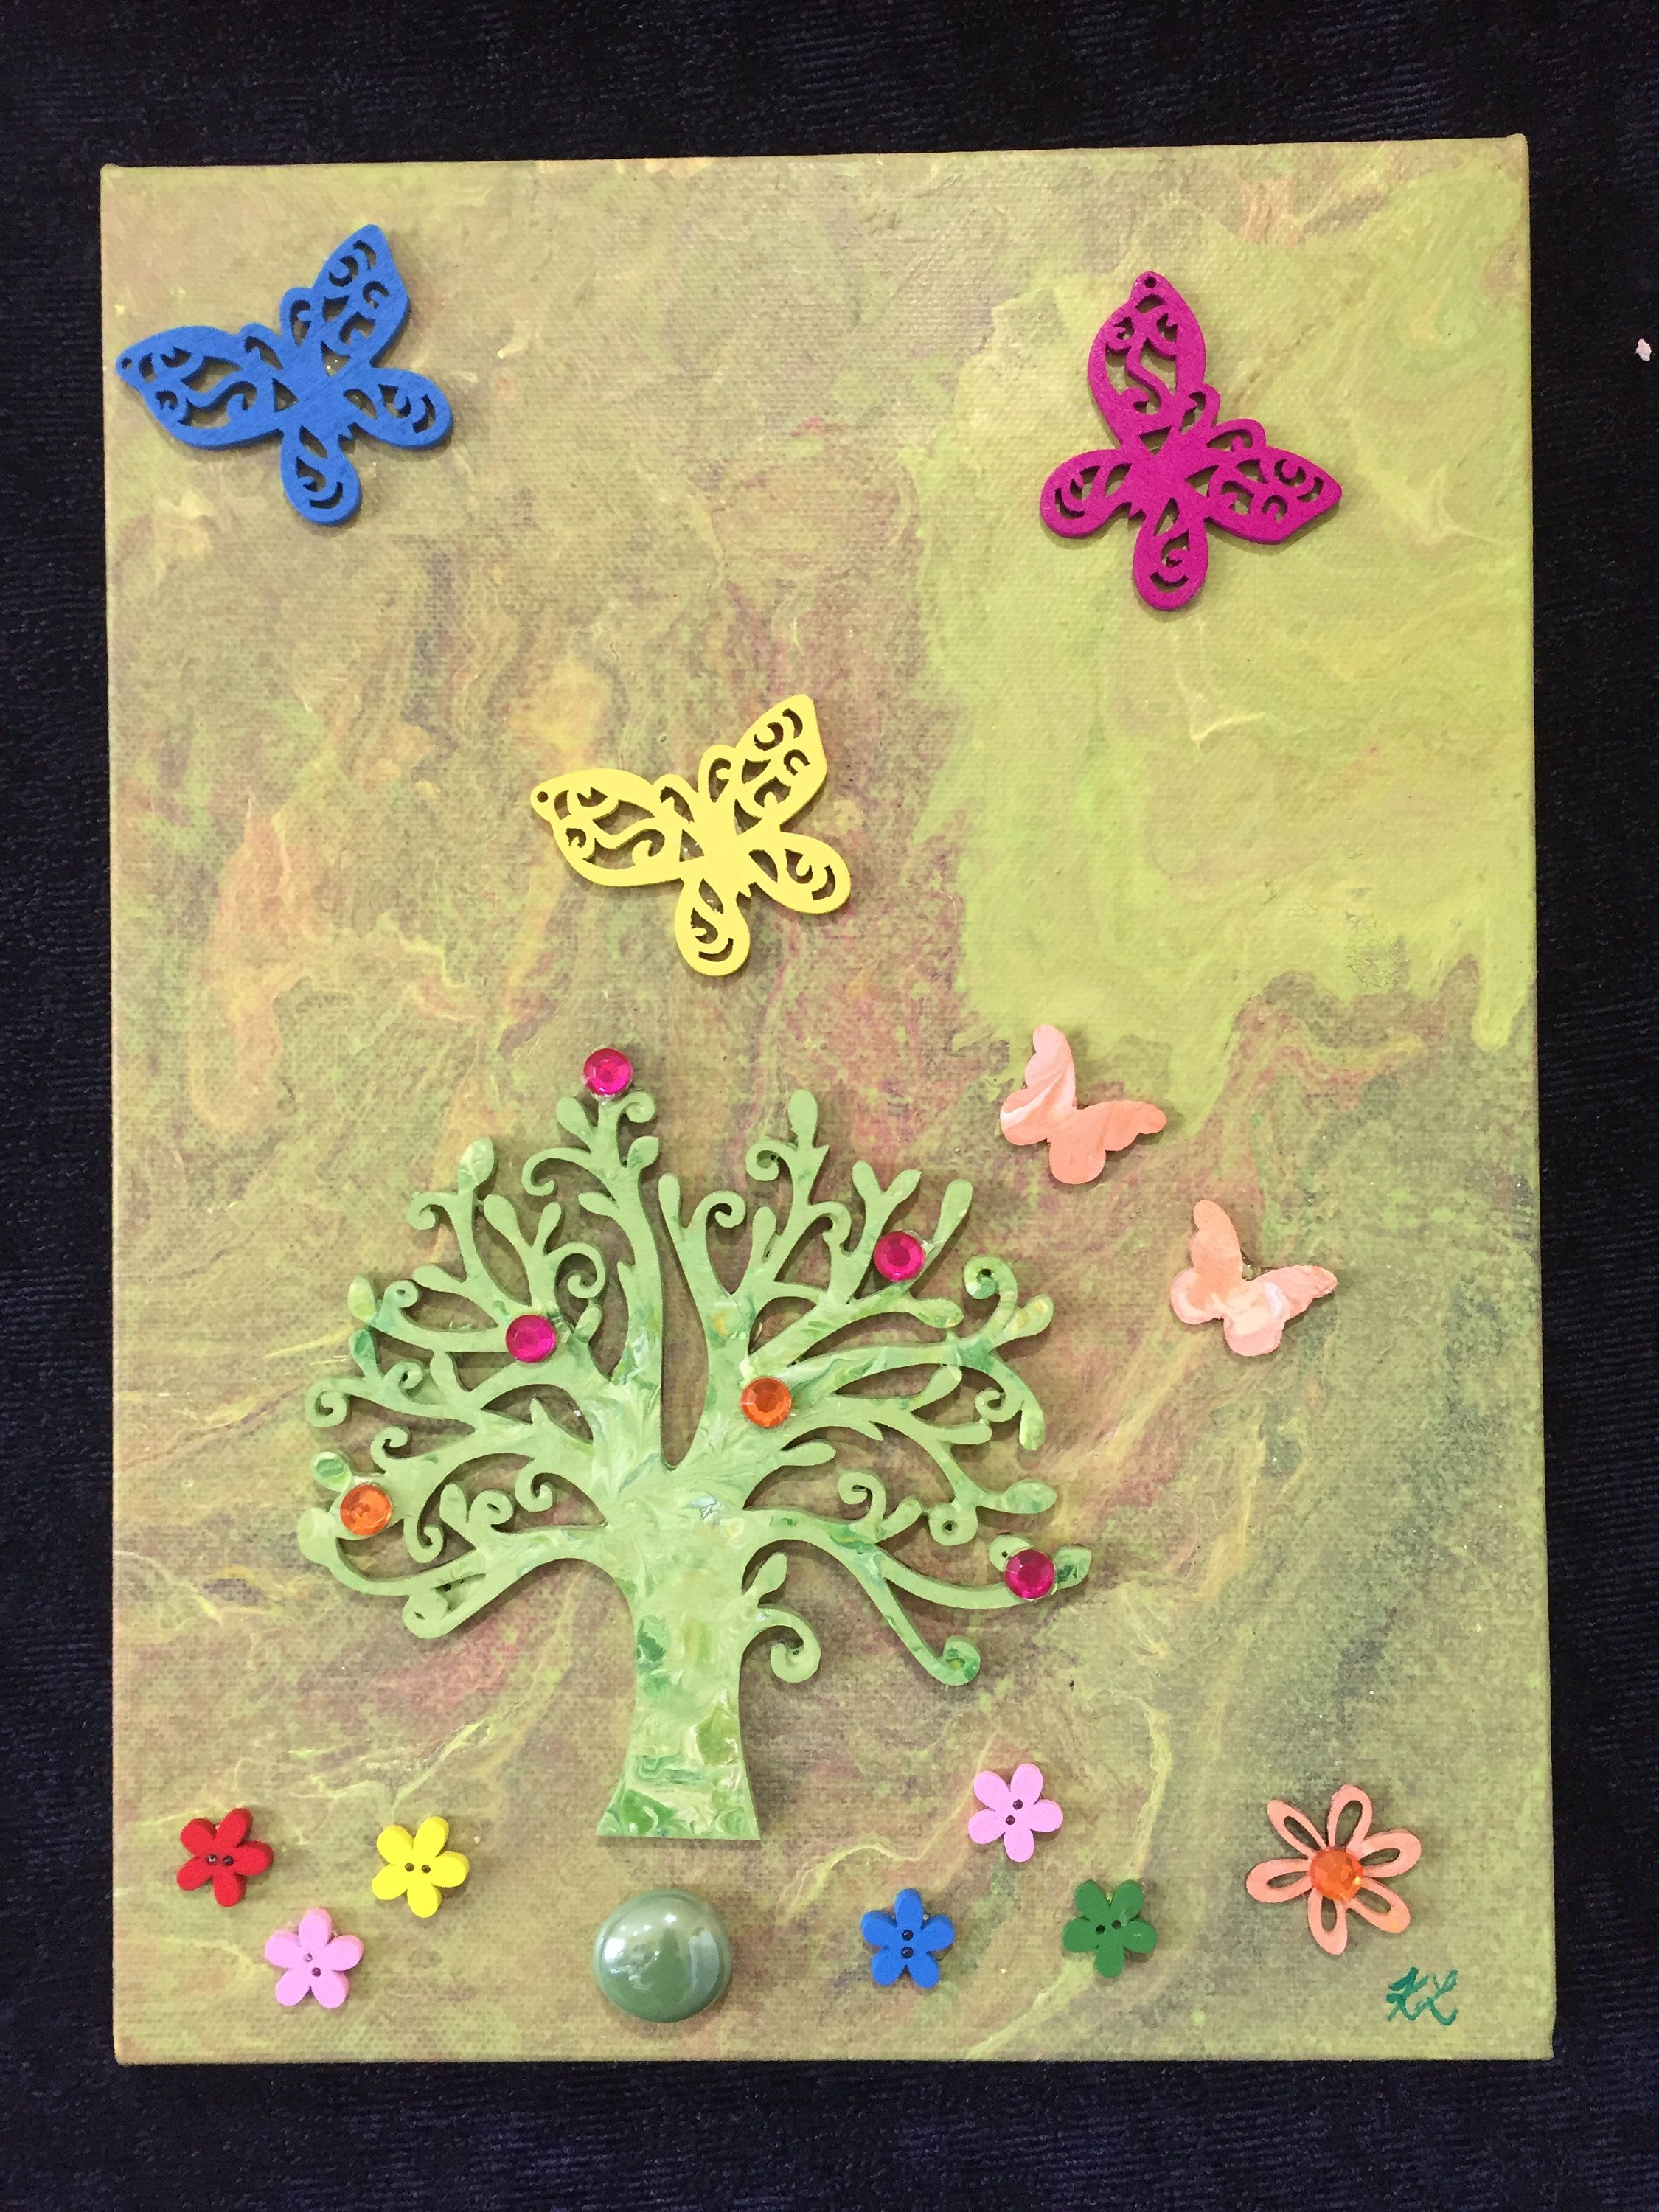 Embellished 9x12 - Original Magical Tree Butterfly 3-D Liquid Poured ...